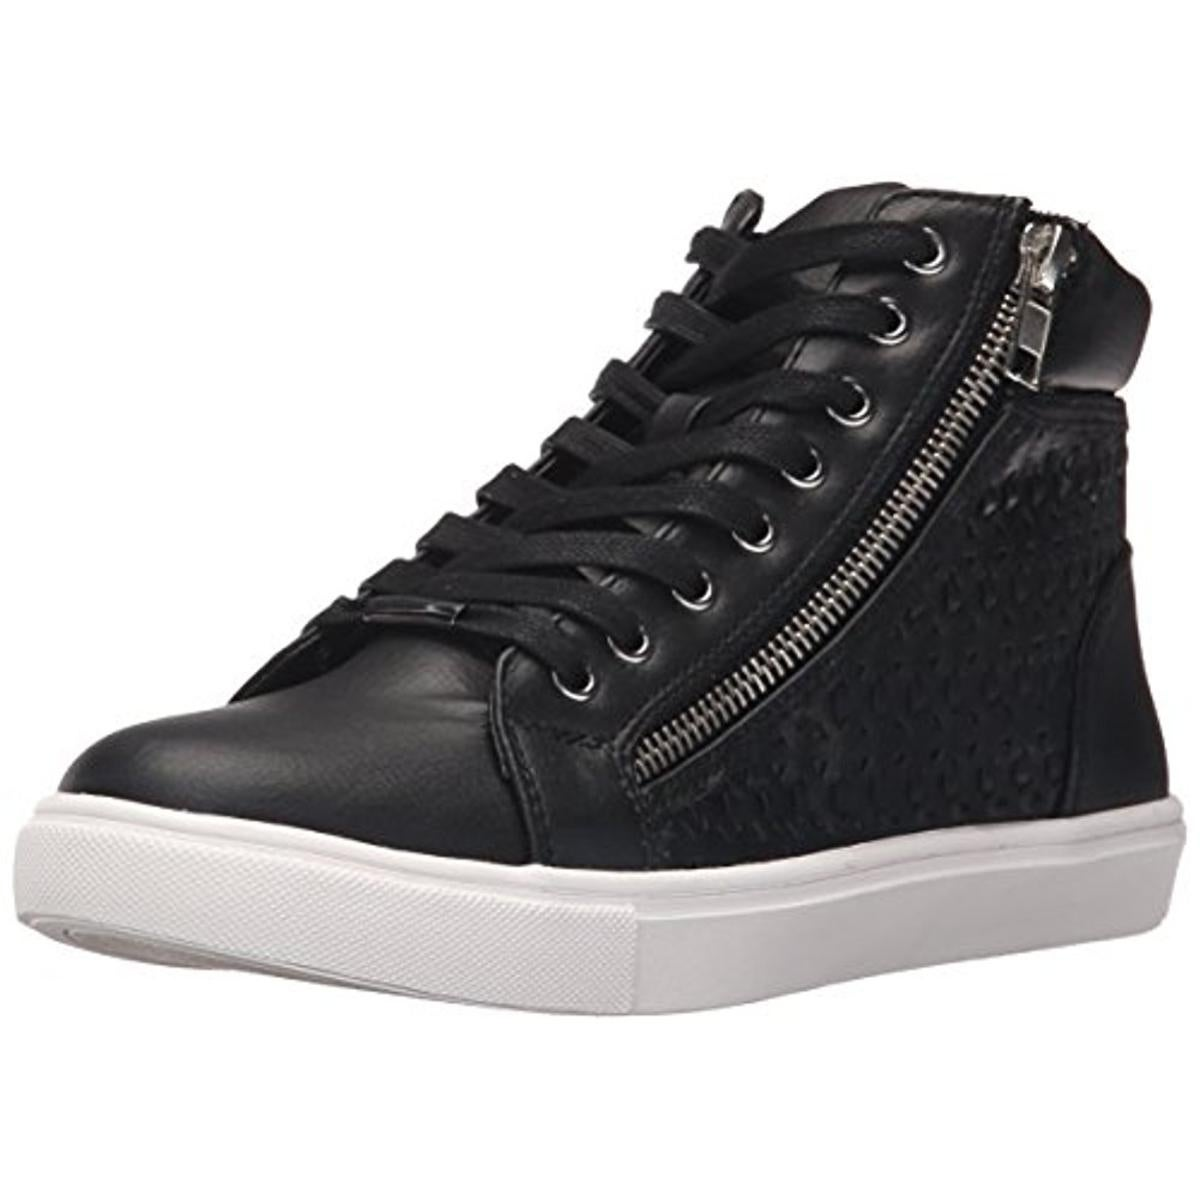 4d91400e889 Steve Madden Womens Eiris Fashion Sneakers Faux Leather Lace-Up